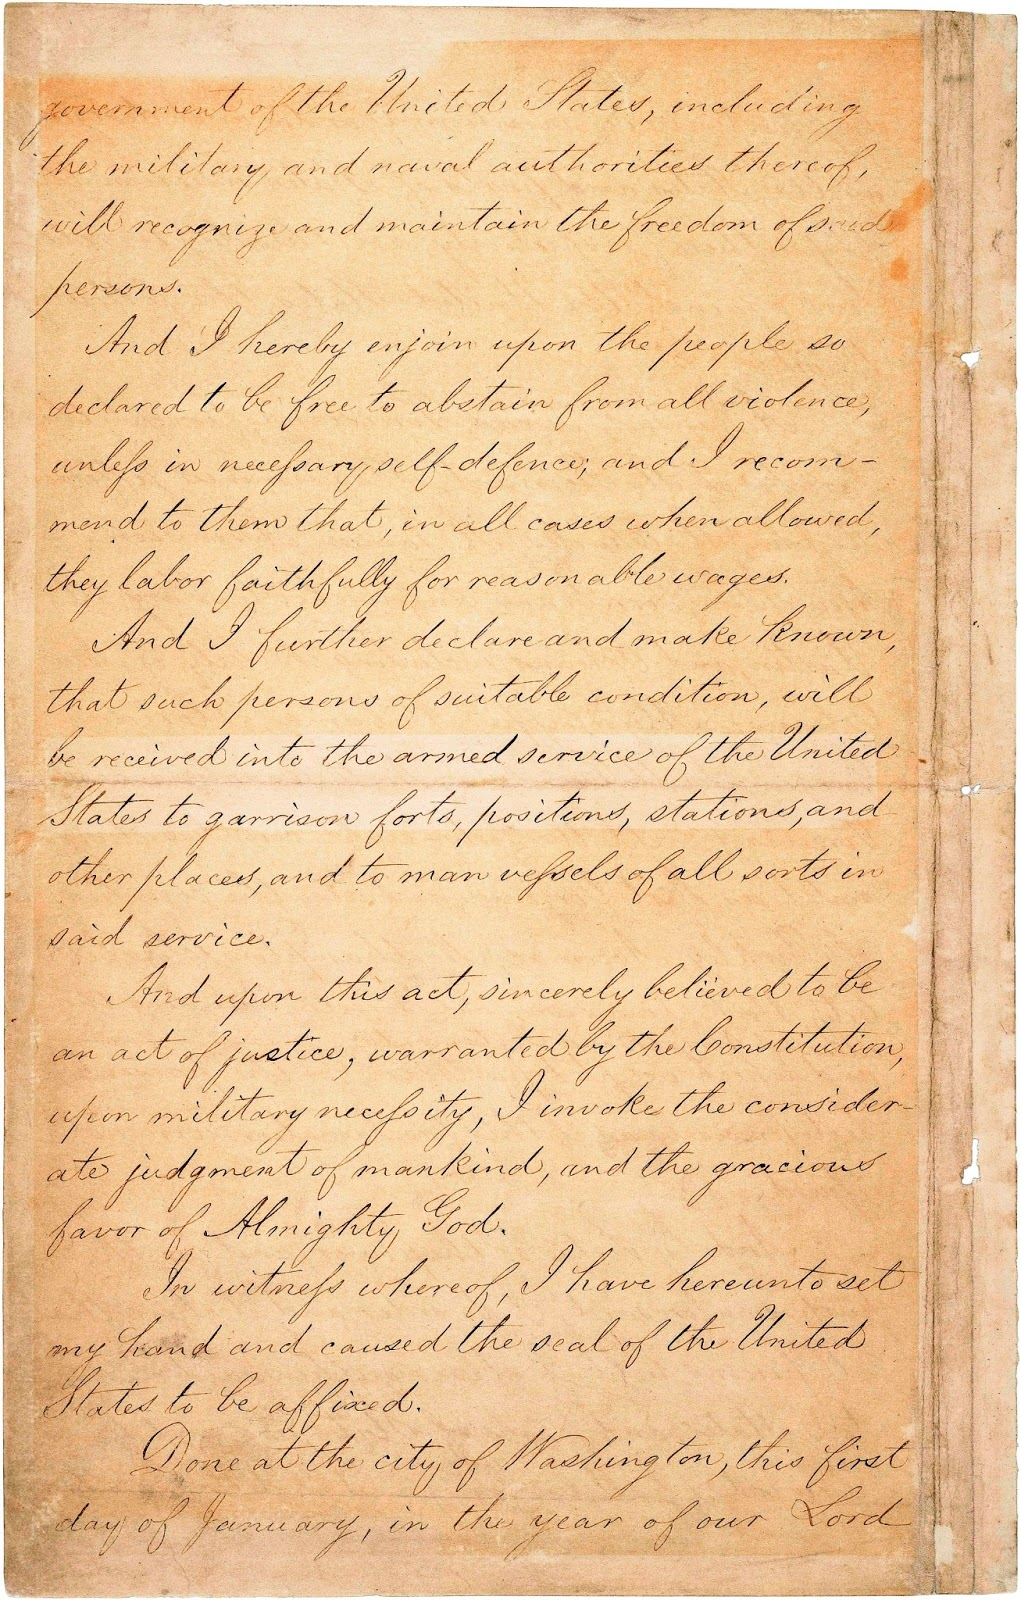 emancipation of proclamation essay Marked the sesquicentennial of 1863's emancipation proclamation, an   emancipation was a process, and in these essays lincoln's emancipation.